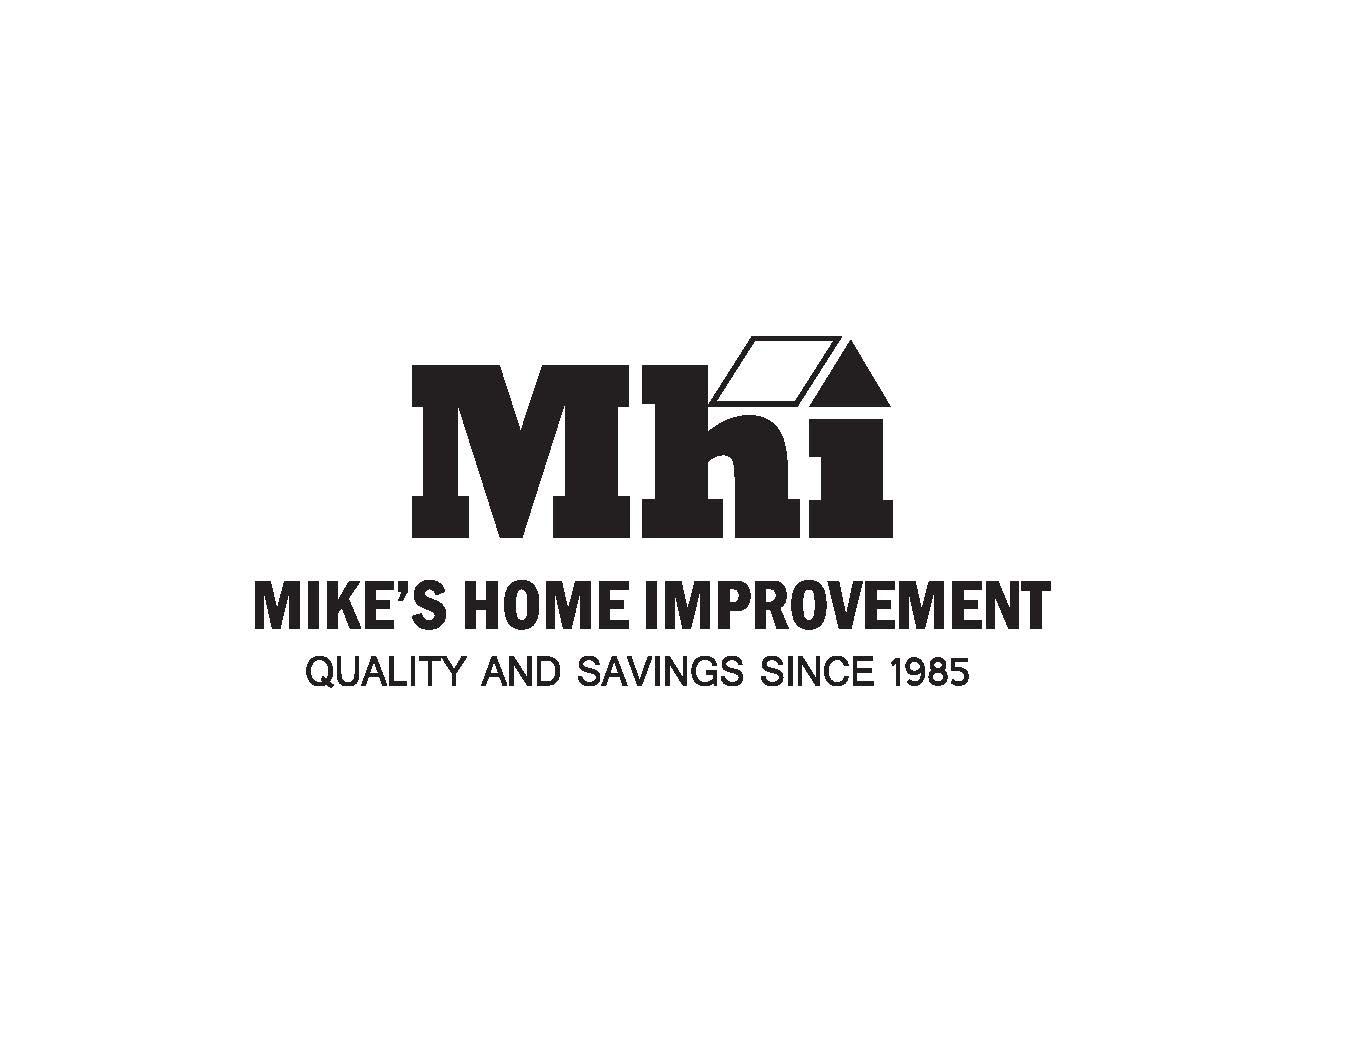 Mike's Home Improvement